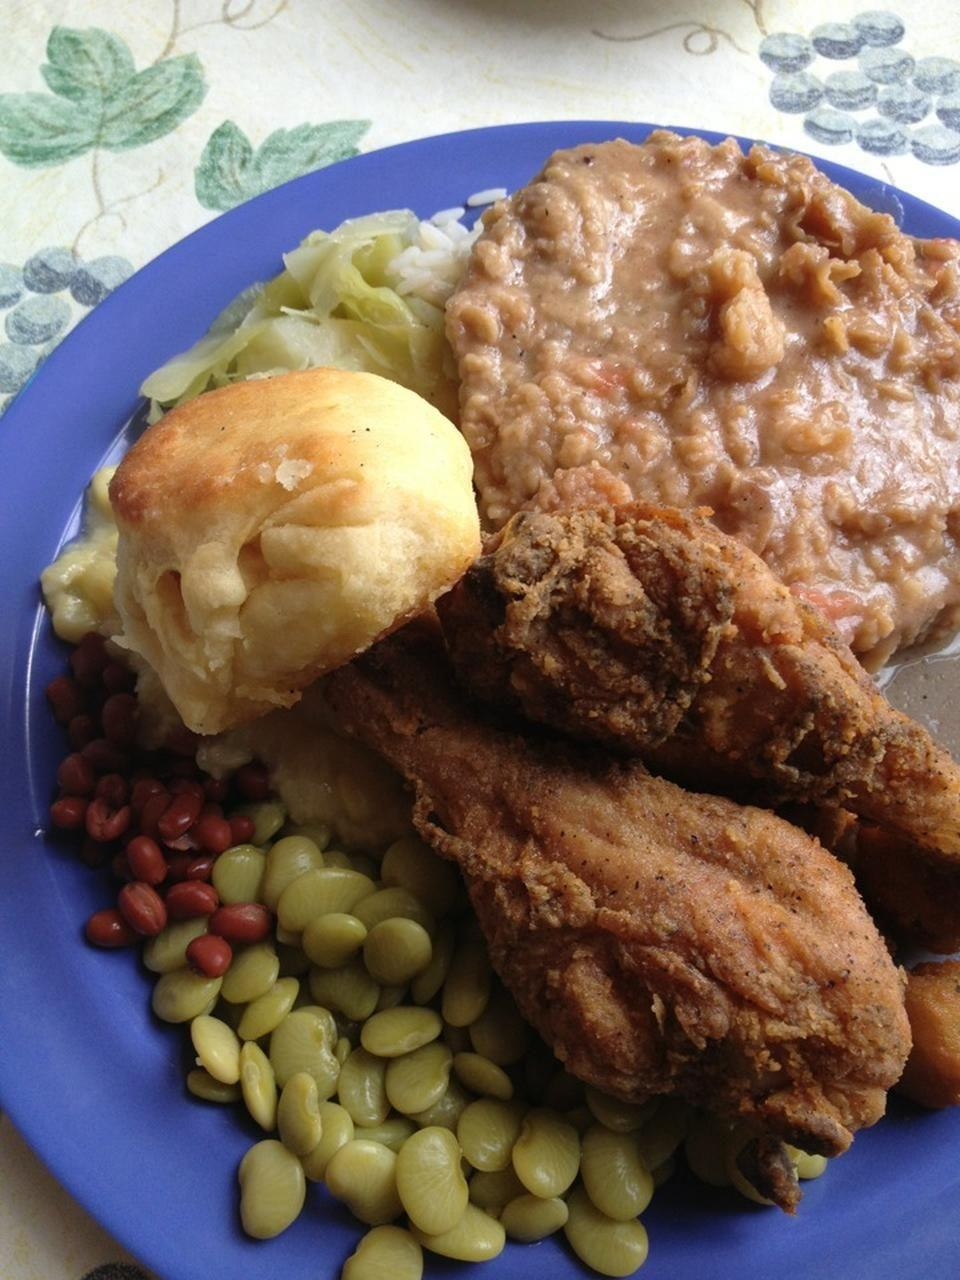 """<p><a href=""""https://www.tripadvisor.com/Restaurant_Review-g43833-d419334-Reviews-Two_Sister_s_Kitchen-Jackson_Mississippi.html"""" rel=""""nofollow noopener"""" target=""""_blank"""" data-ylk=""""slk:Two Sisters' Kitchen"""" class=""""link rapid-noclick-resp"""">Two Sisters' Kitchen</a>, Jackson</p><p>The fried chicken was hot, delicious, and not greasy. Excellent! The vegetables and the yeast roll were as good as any Mama ever prepared.<span class=""""redactor-invisible-space""""> - Foursquare user <a href=""""https://foursquare.com/user/38965293"""" rel=""""nofollow noopener"""" target=""""_blank"""" data-ylk=""""slk:Robbie Endris"""" class=""""link rapid-noclick-resp"""">Robbie Endris</a></span><br></p>"""